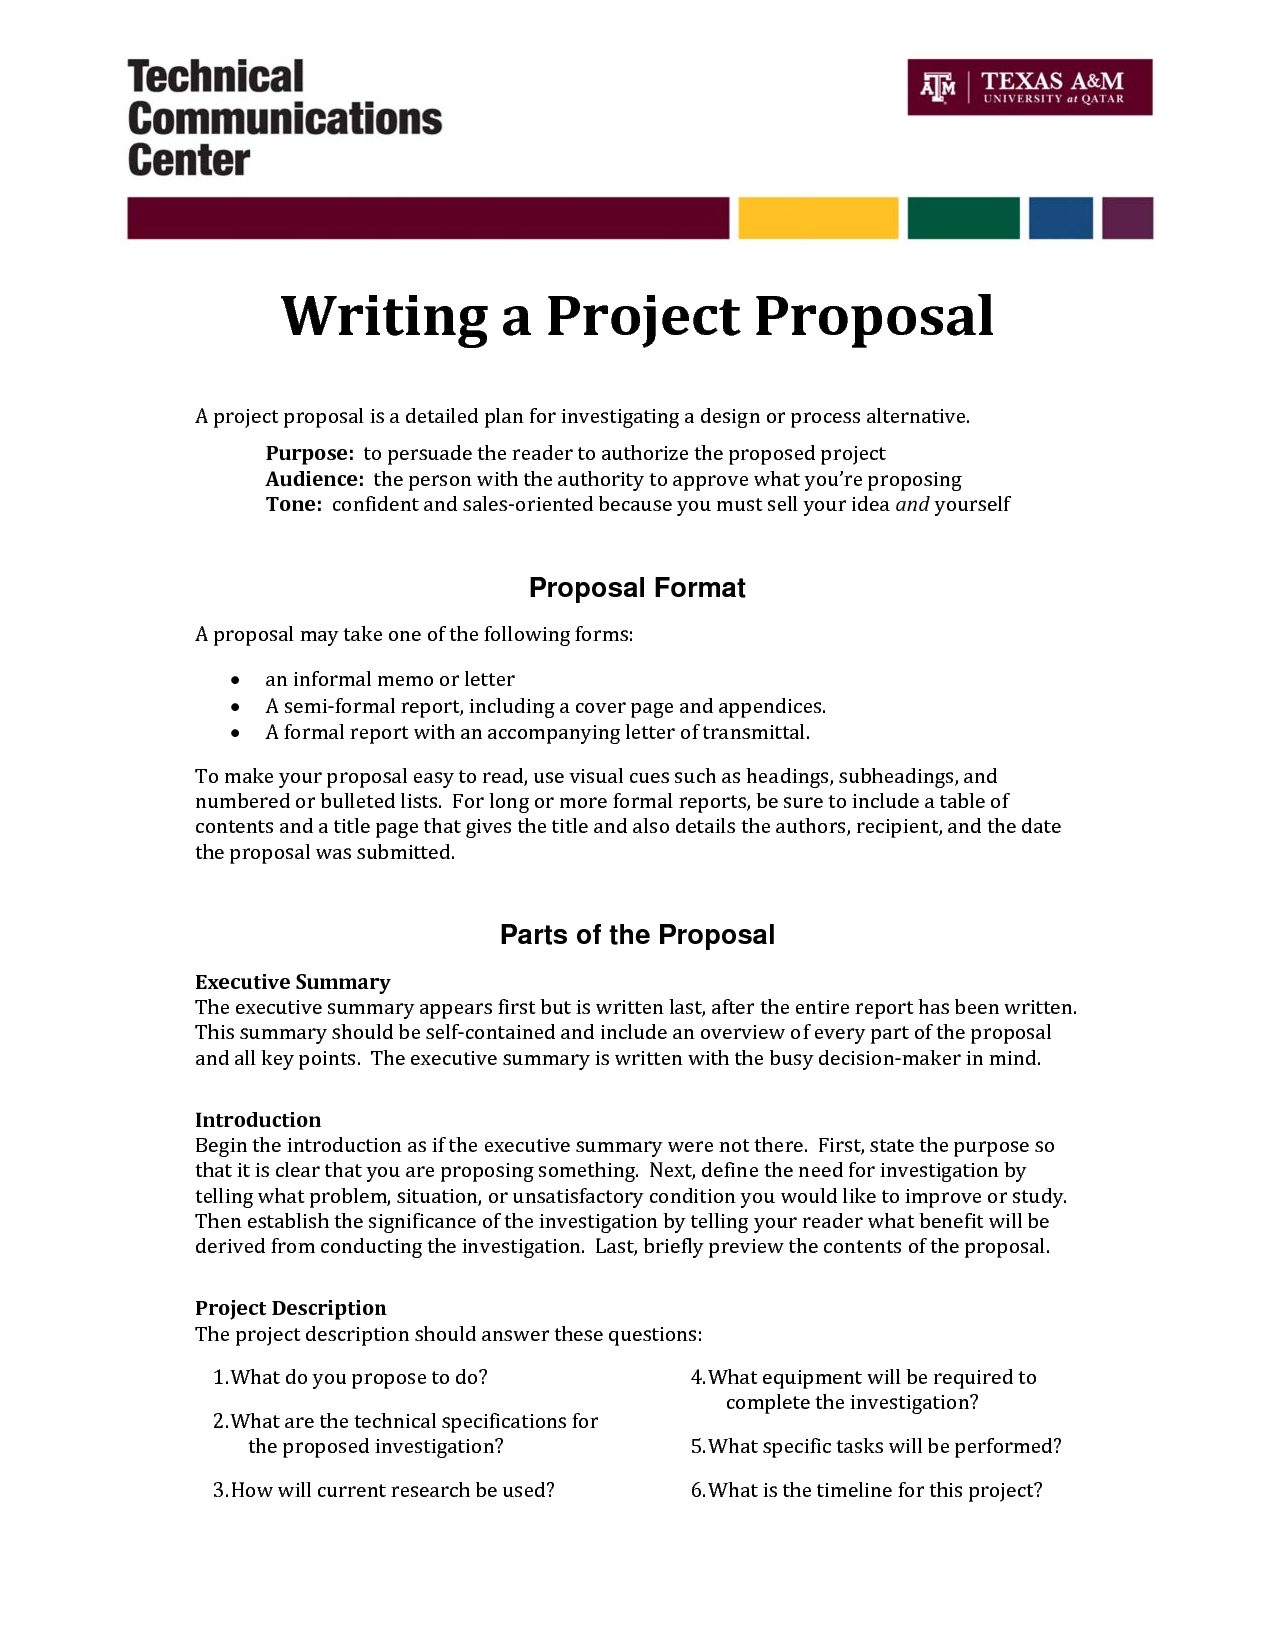 Informal proposal letter example writing a project proposal a informal proposal letter example writing a project proposal a project proposal is a detailed maxwellsz